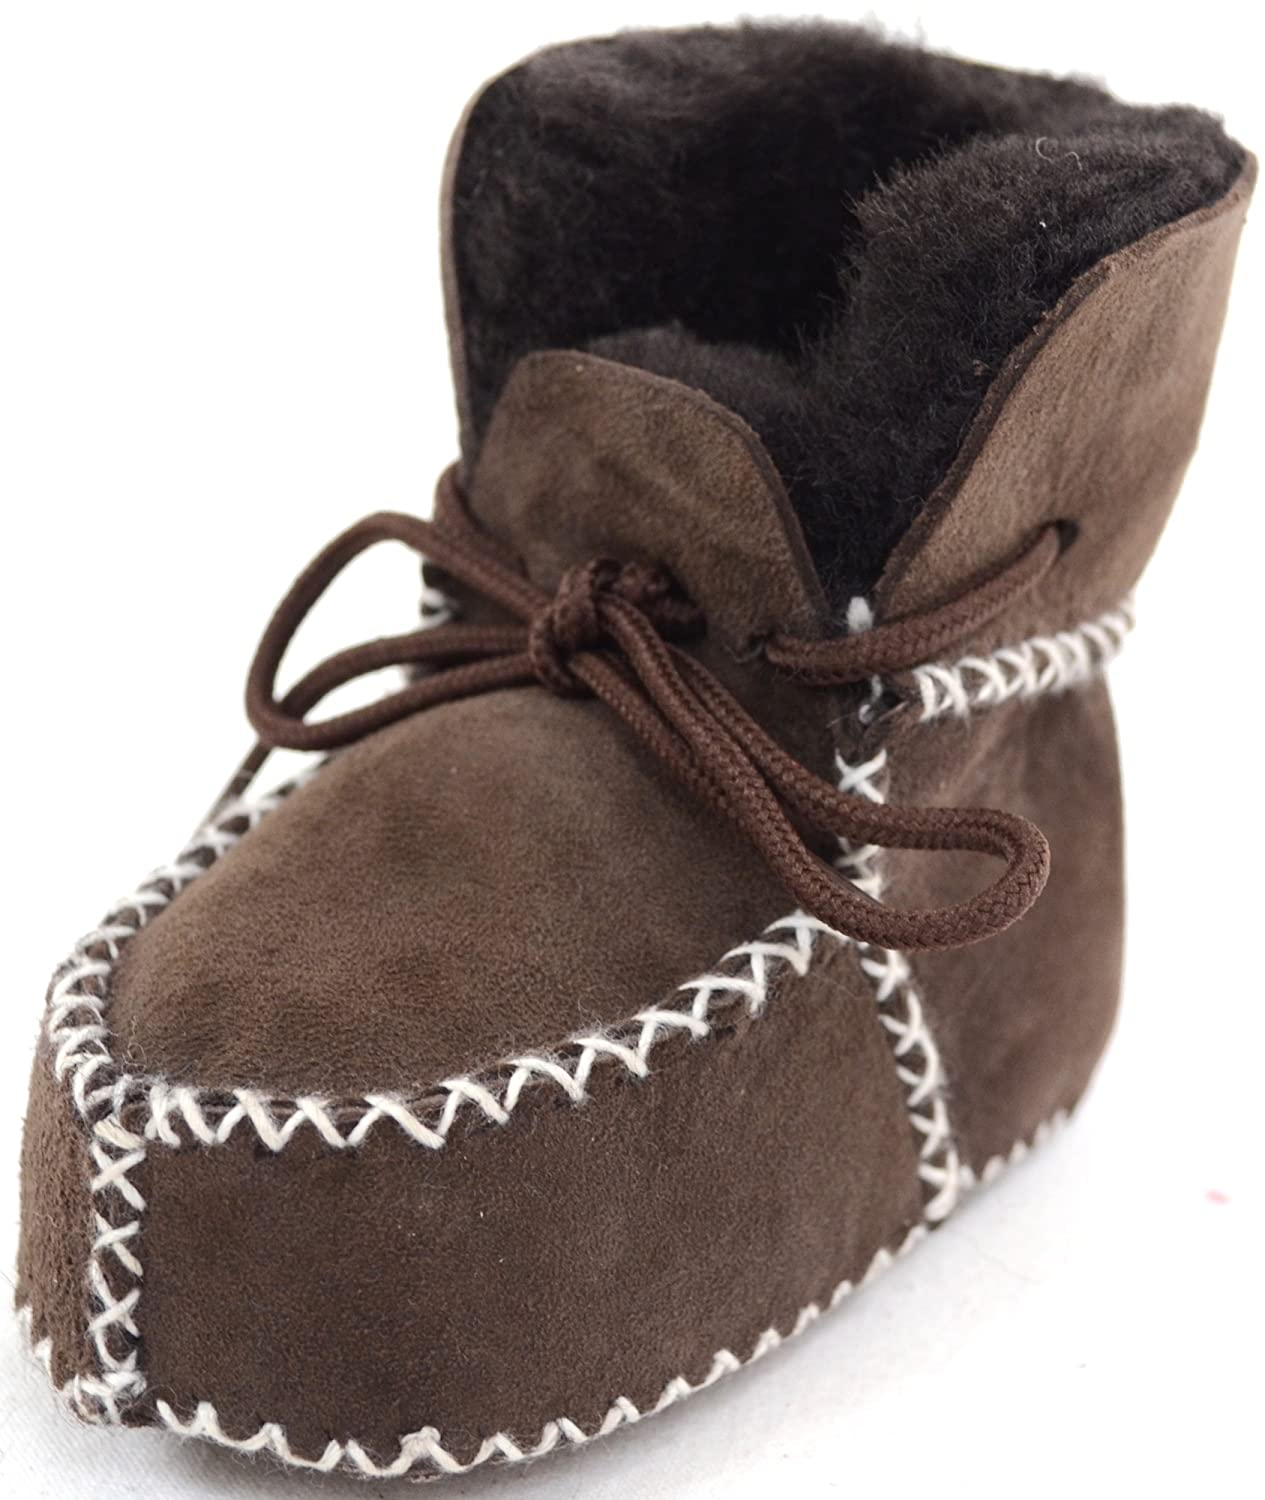 Baby / Children's Sheepskin Booties with Lace Up Fastening